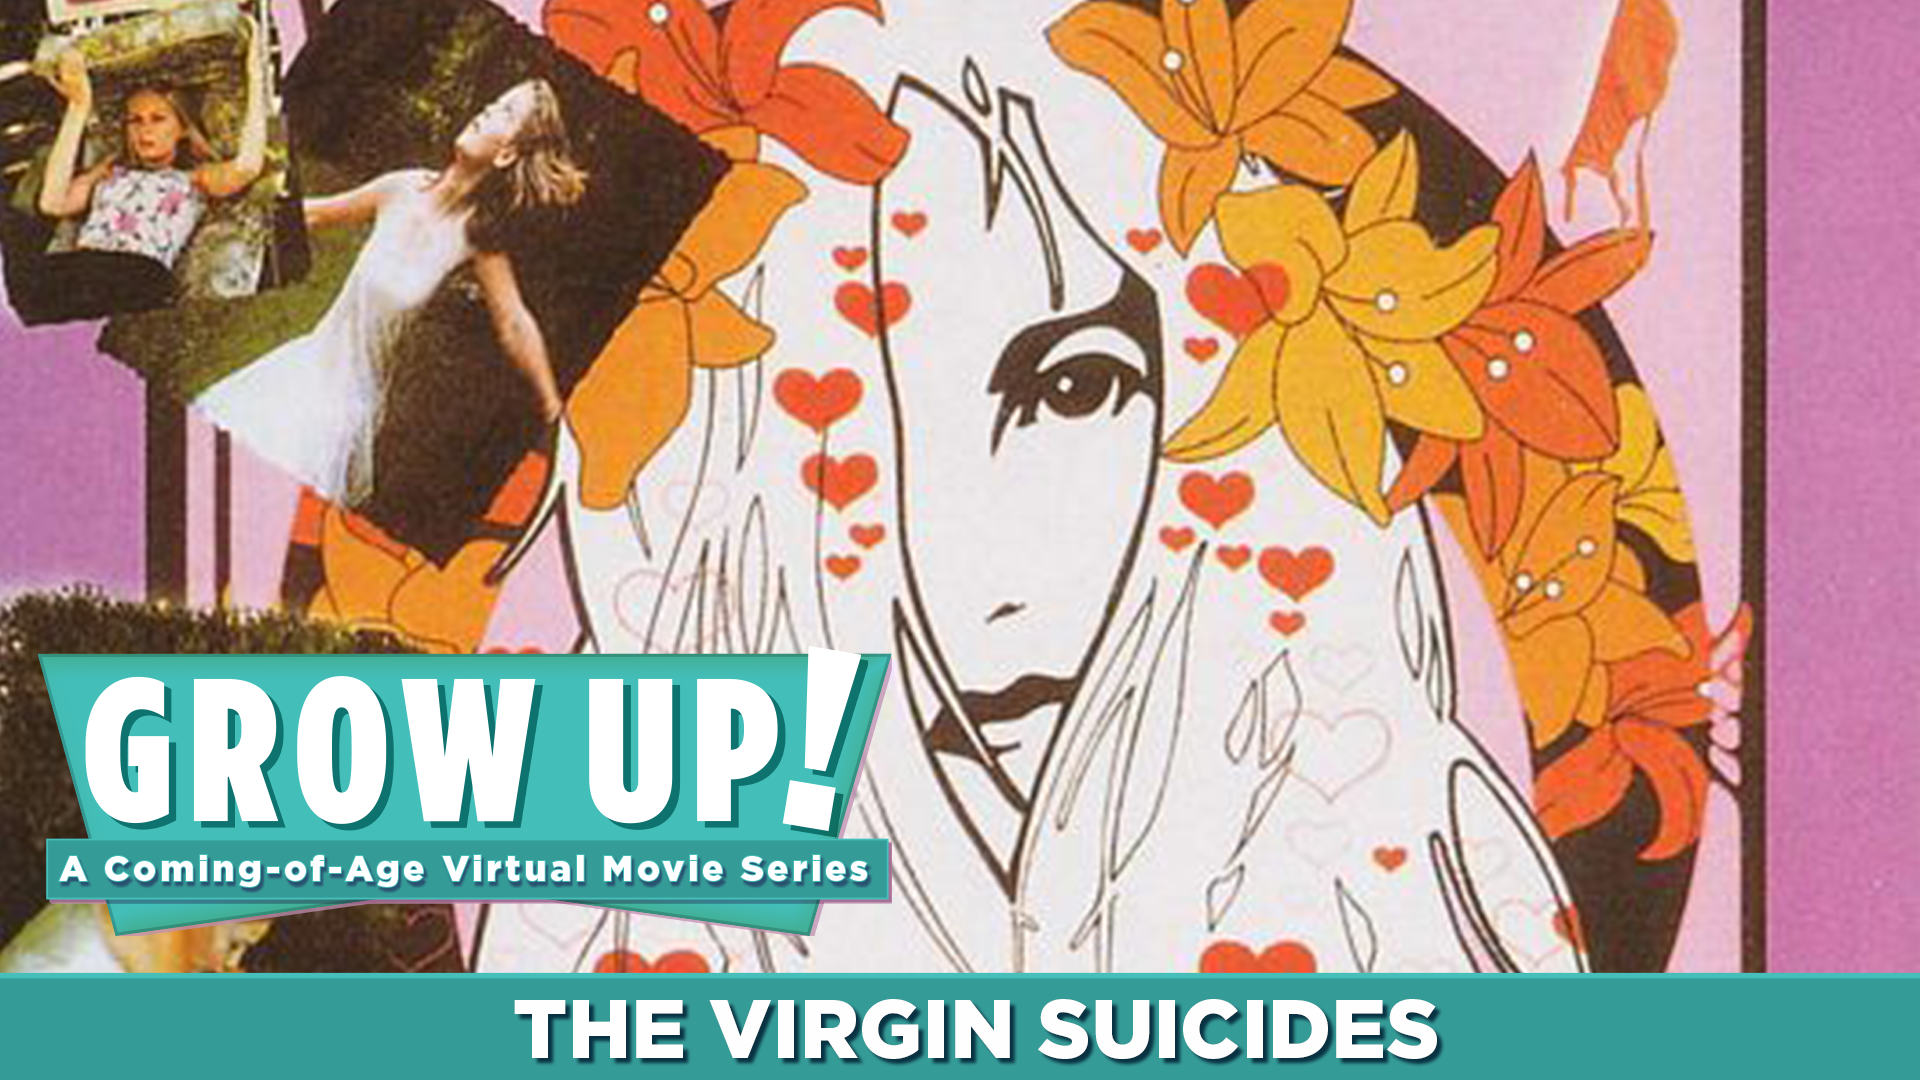 Grow Up! A Coming-of-Age Virtual Movie Series - The Virgin Suicides